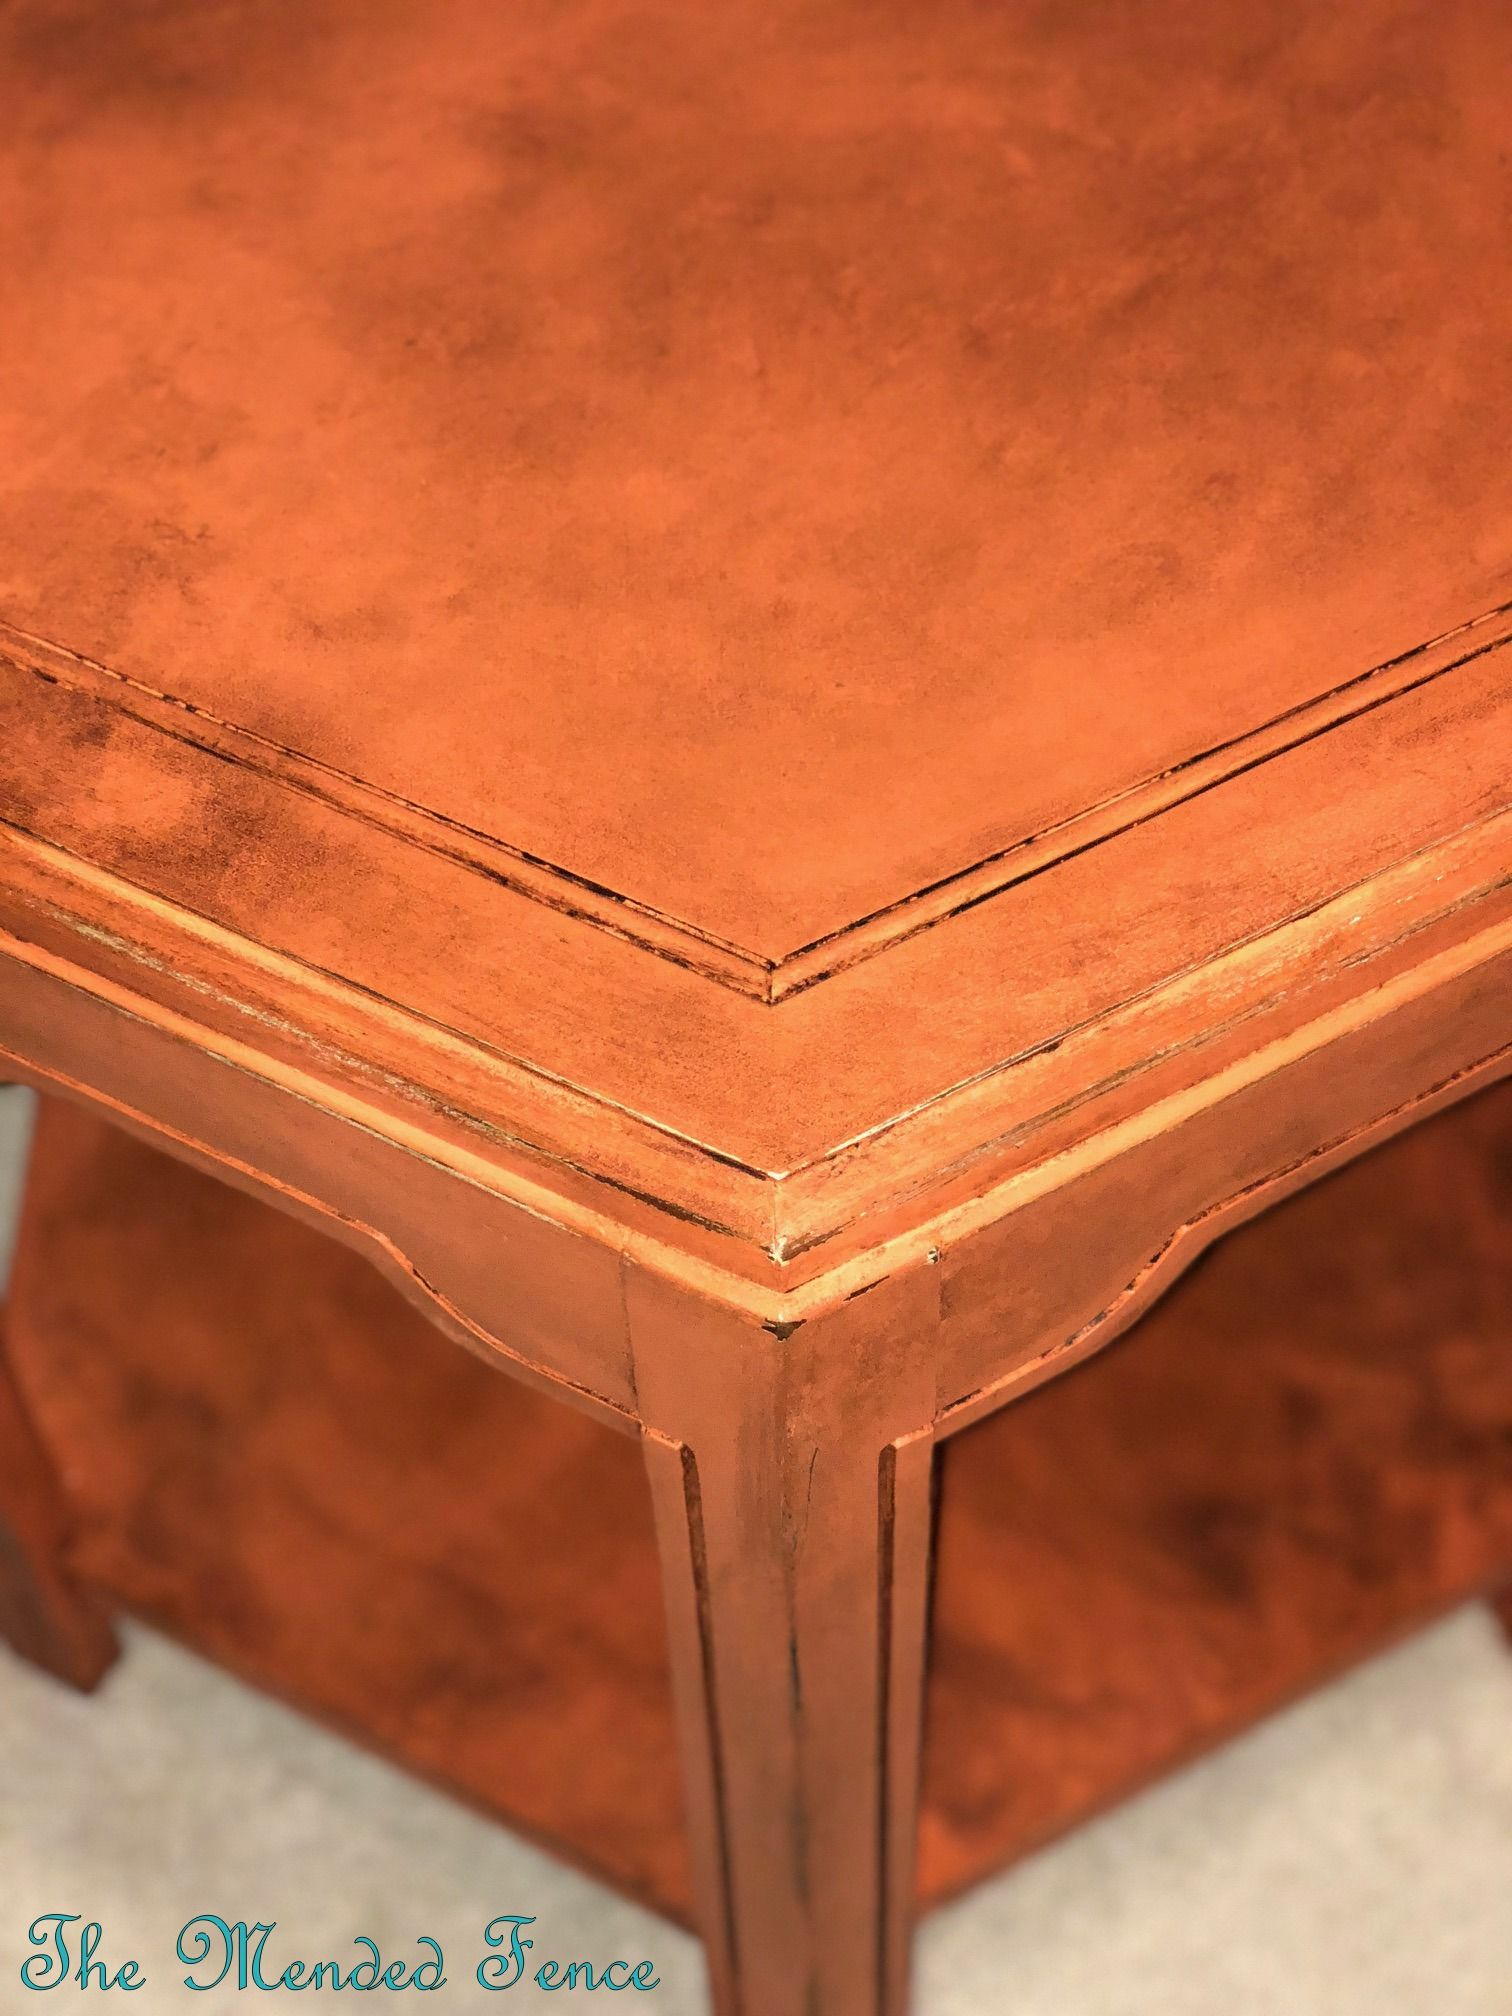 Octagonal Accent Table Painted In Tuscan Orange Fusion Mineral Paint And Finished A Dark Wax